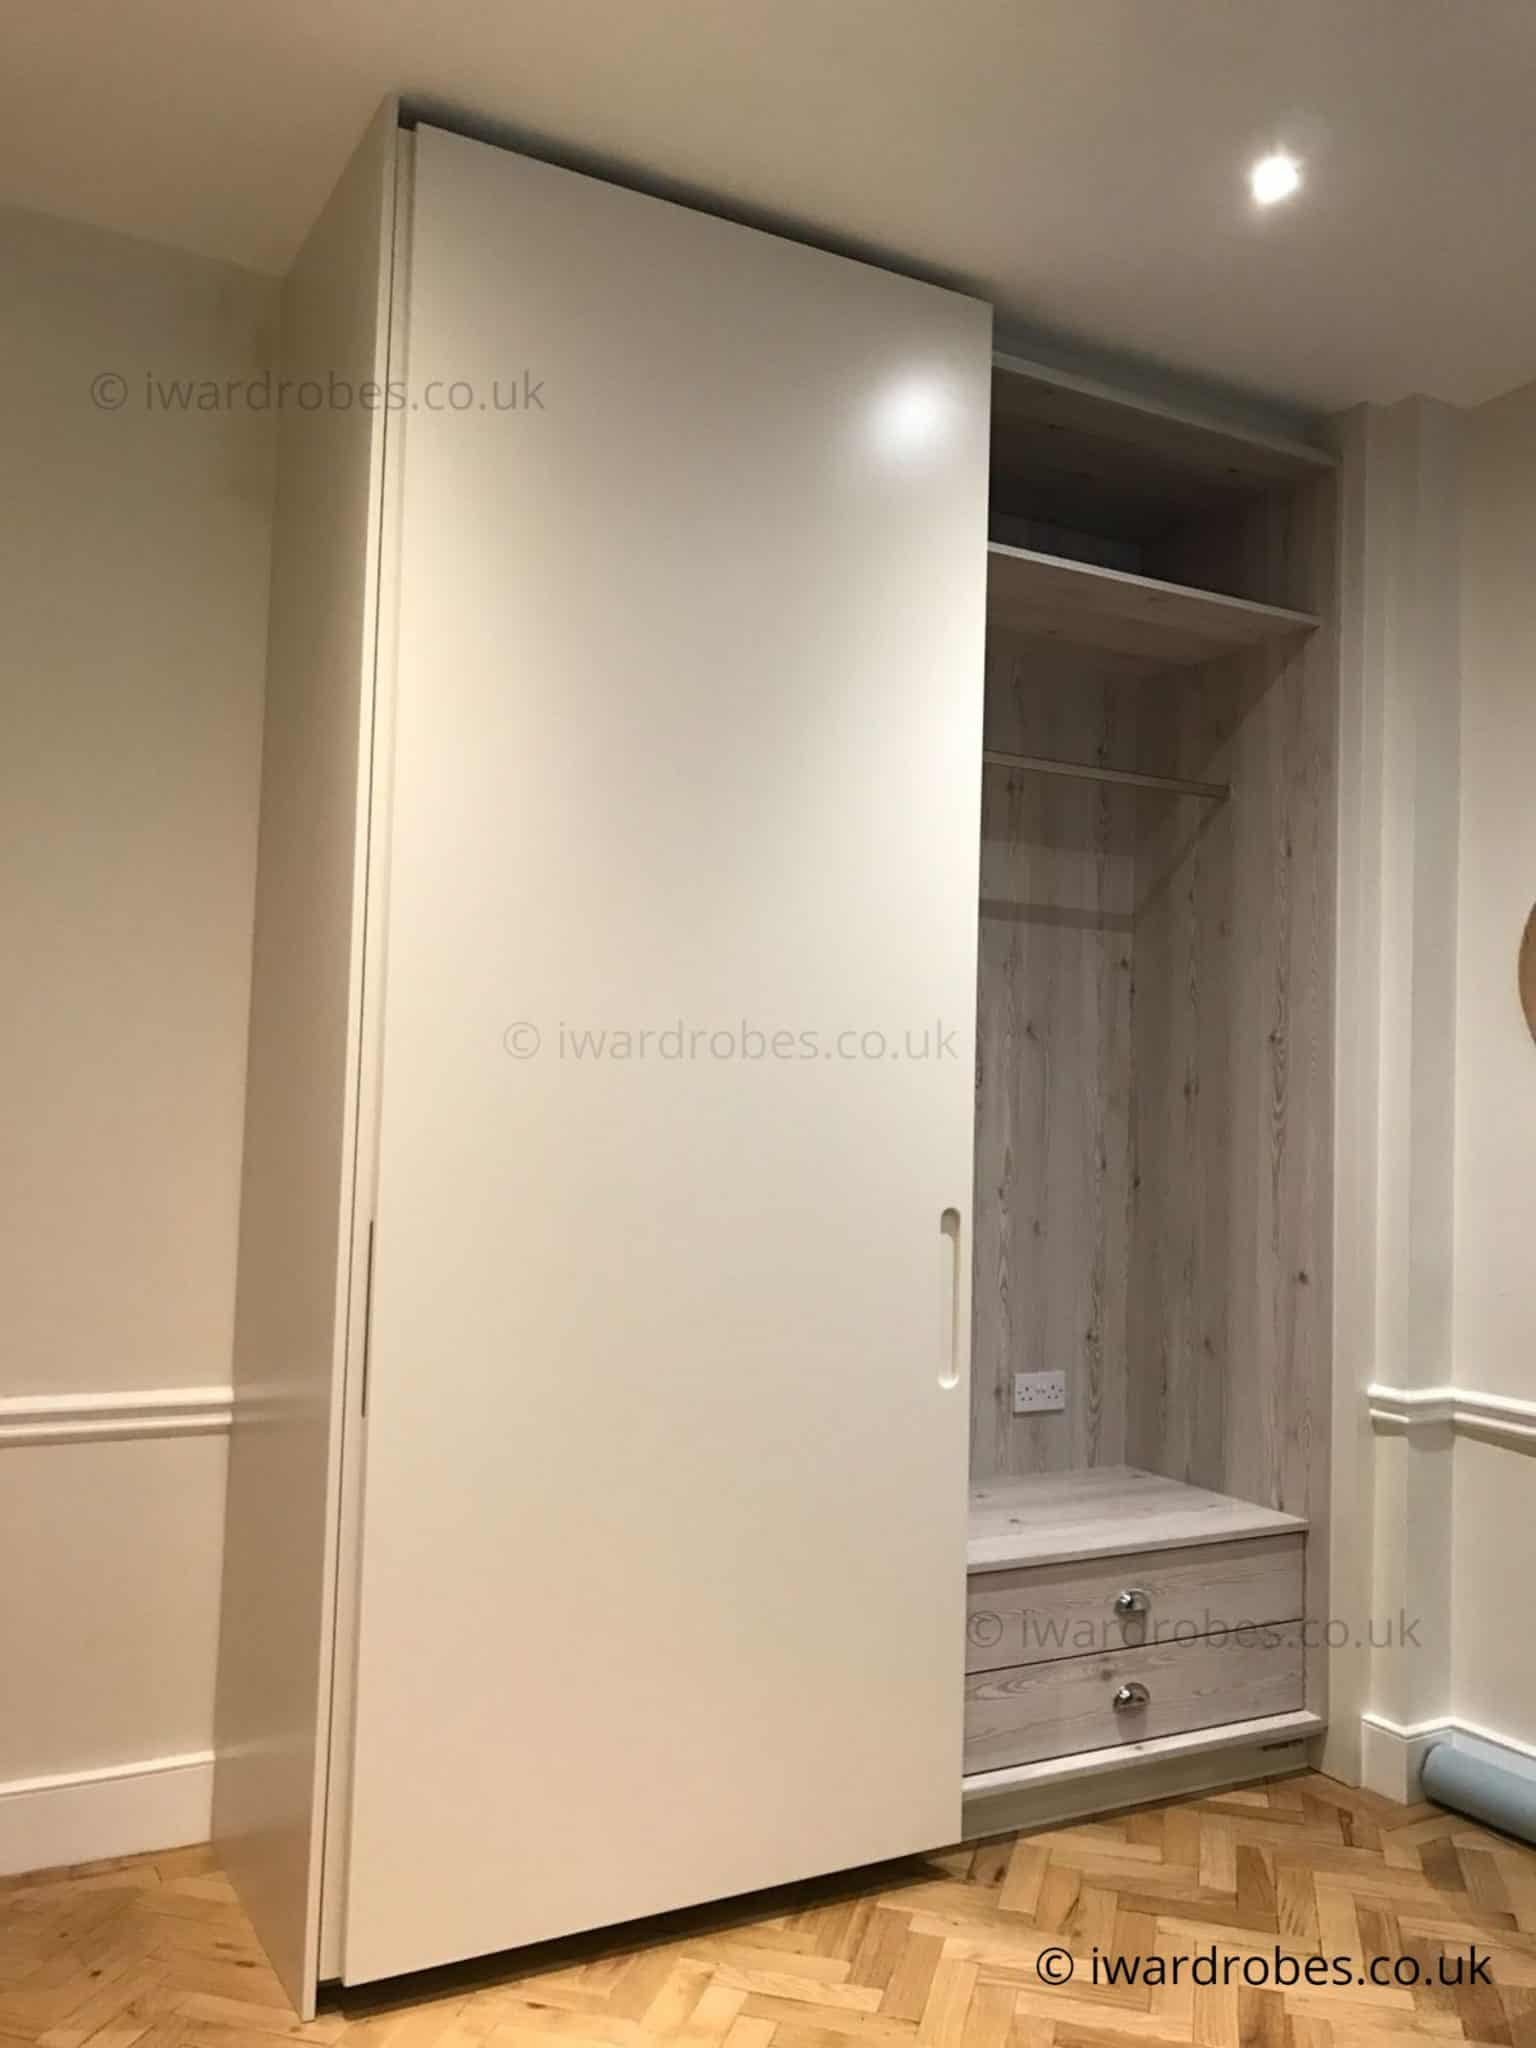 Sliding Wardrobes London  Sliding Door Wardrobes London  Fitted Sliding Wardrobe